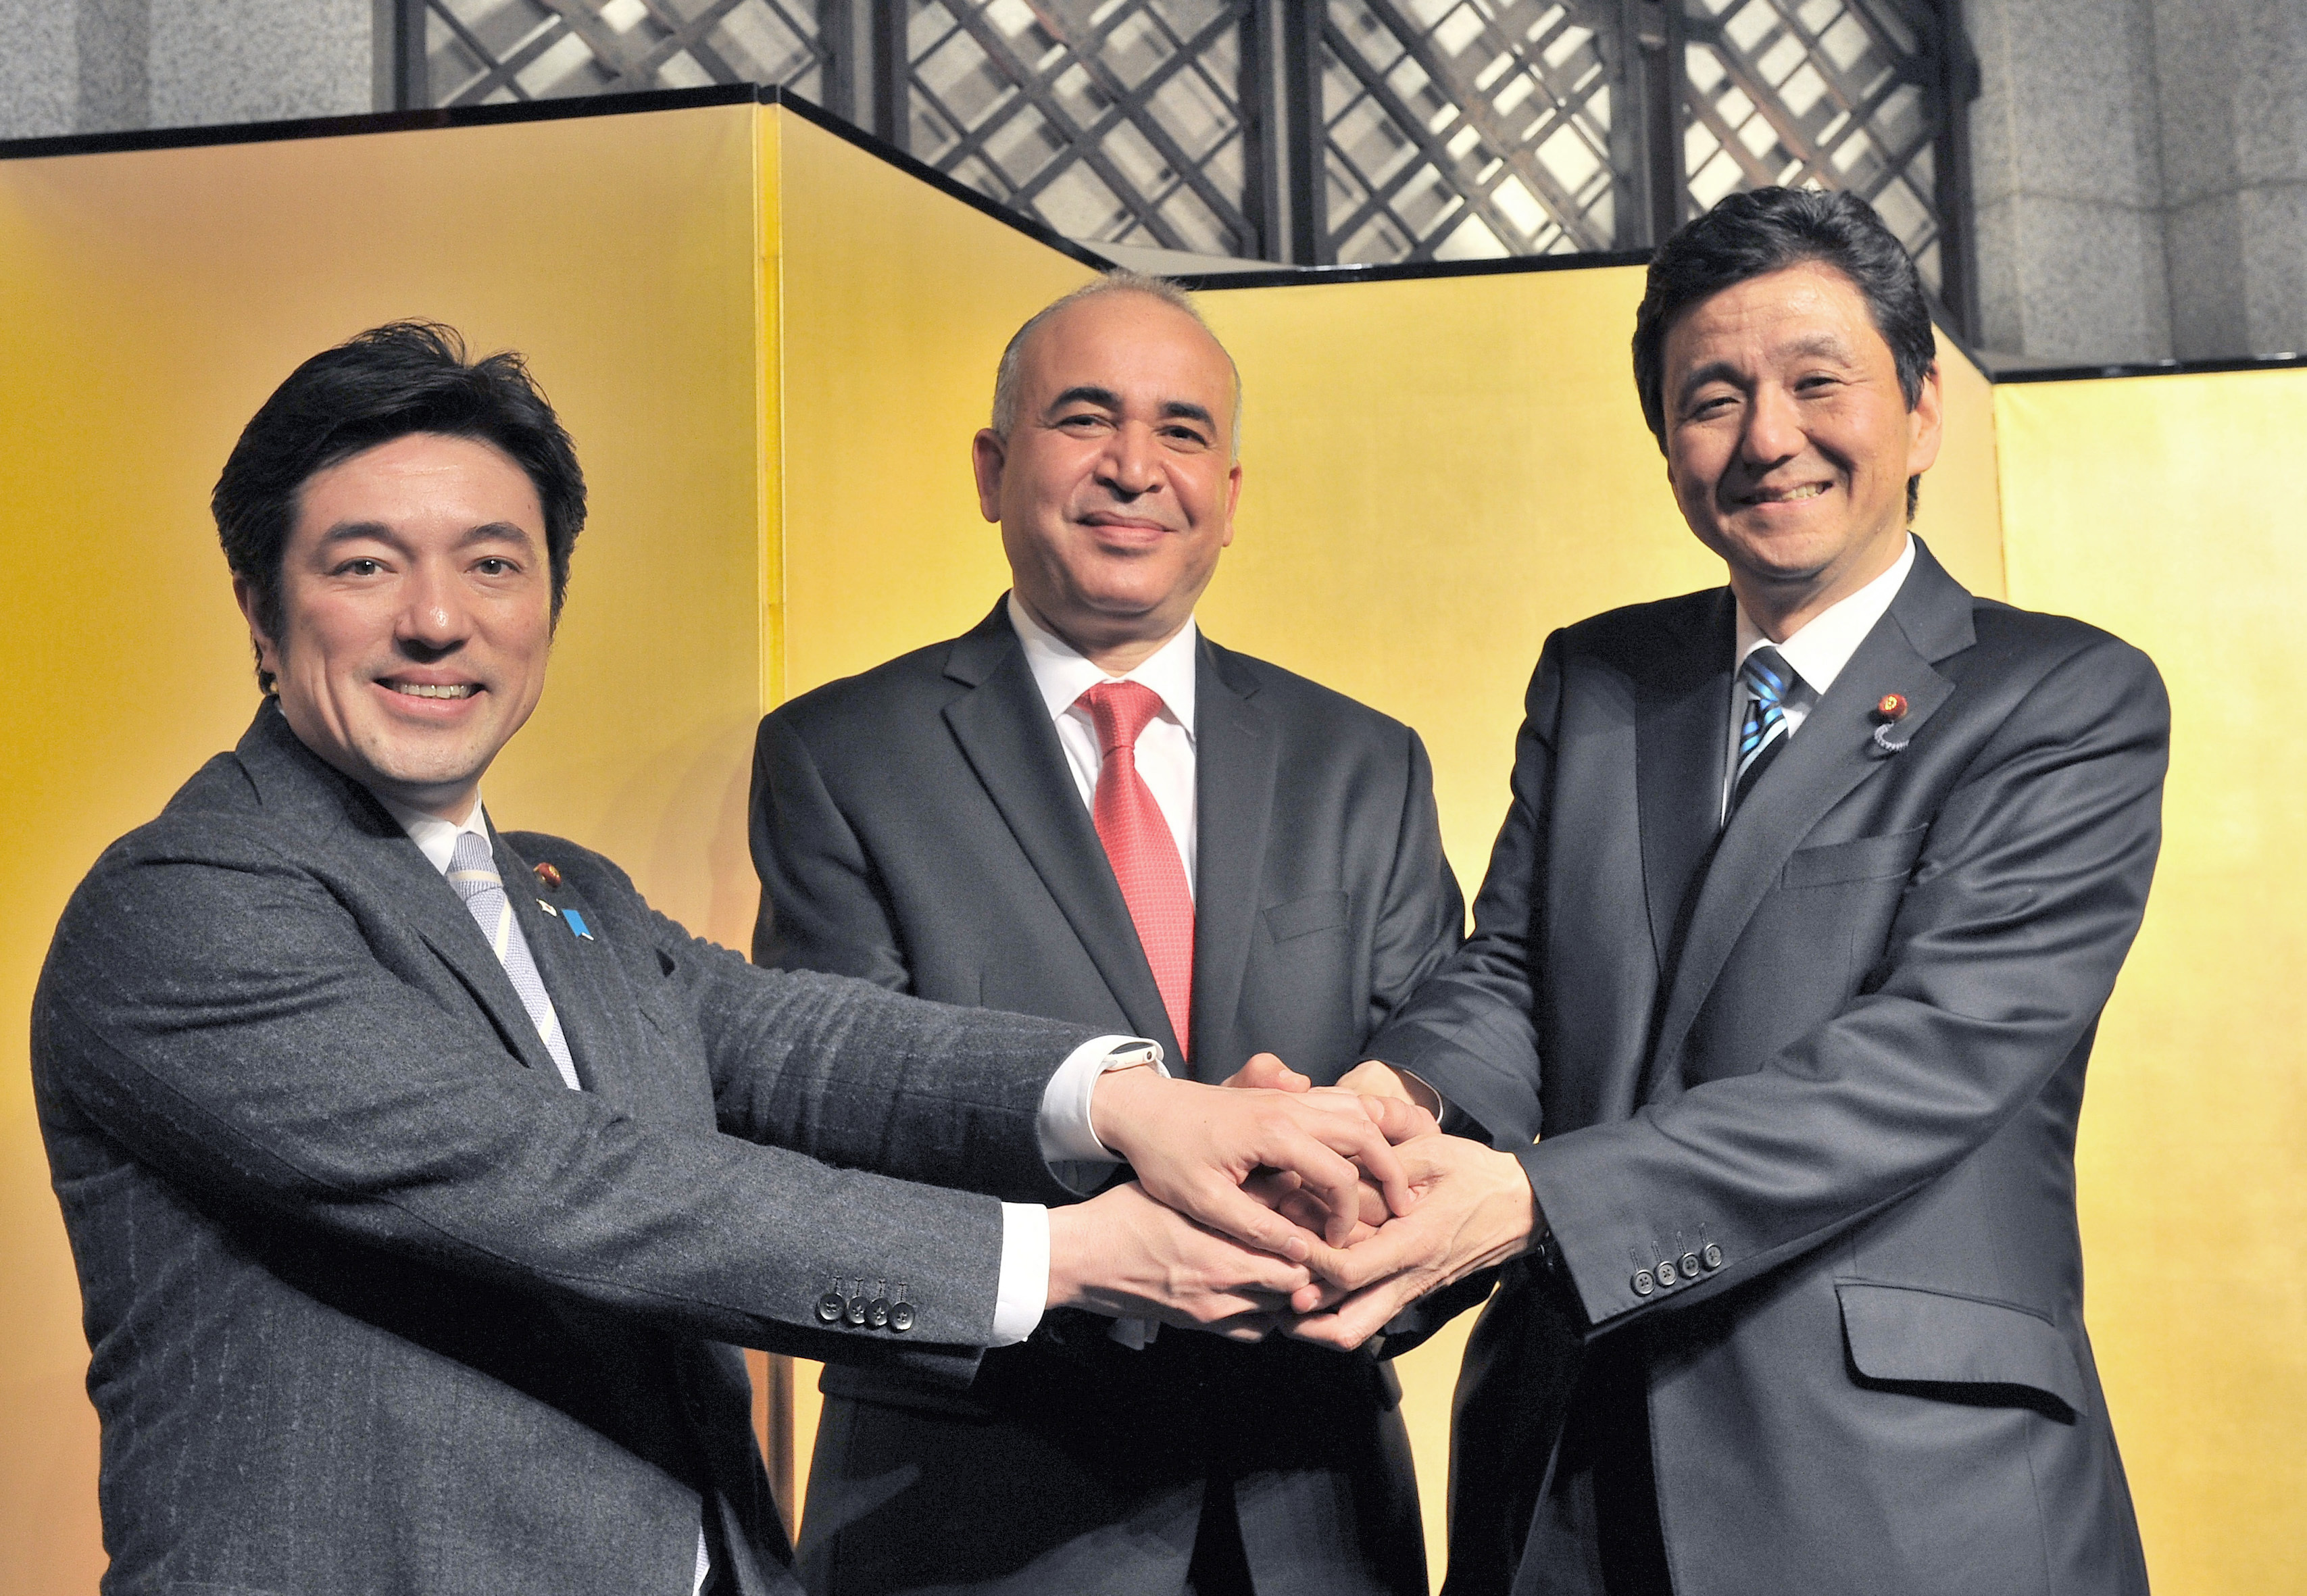 Tunisia's Ambassador Kais Darragi (center) joins hands with Japan Tunisia Parliamentary Committee Secretary-General Yasuhide Yamanaka  and Chairman of the committee and State Minister for Foreign Affairs Nobuo Kishi at a reception to celebrate the country's 61st independence anniversary at the Hotel Okura, Tokyo, on      March 24. yoshiaki miura |